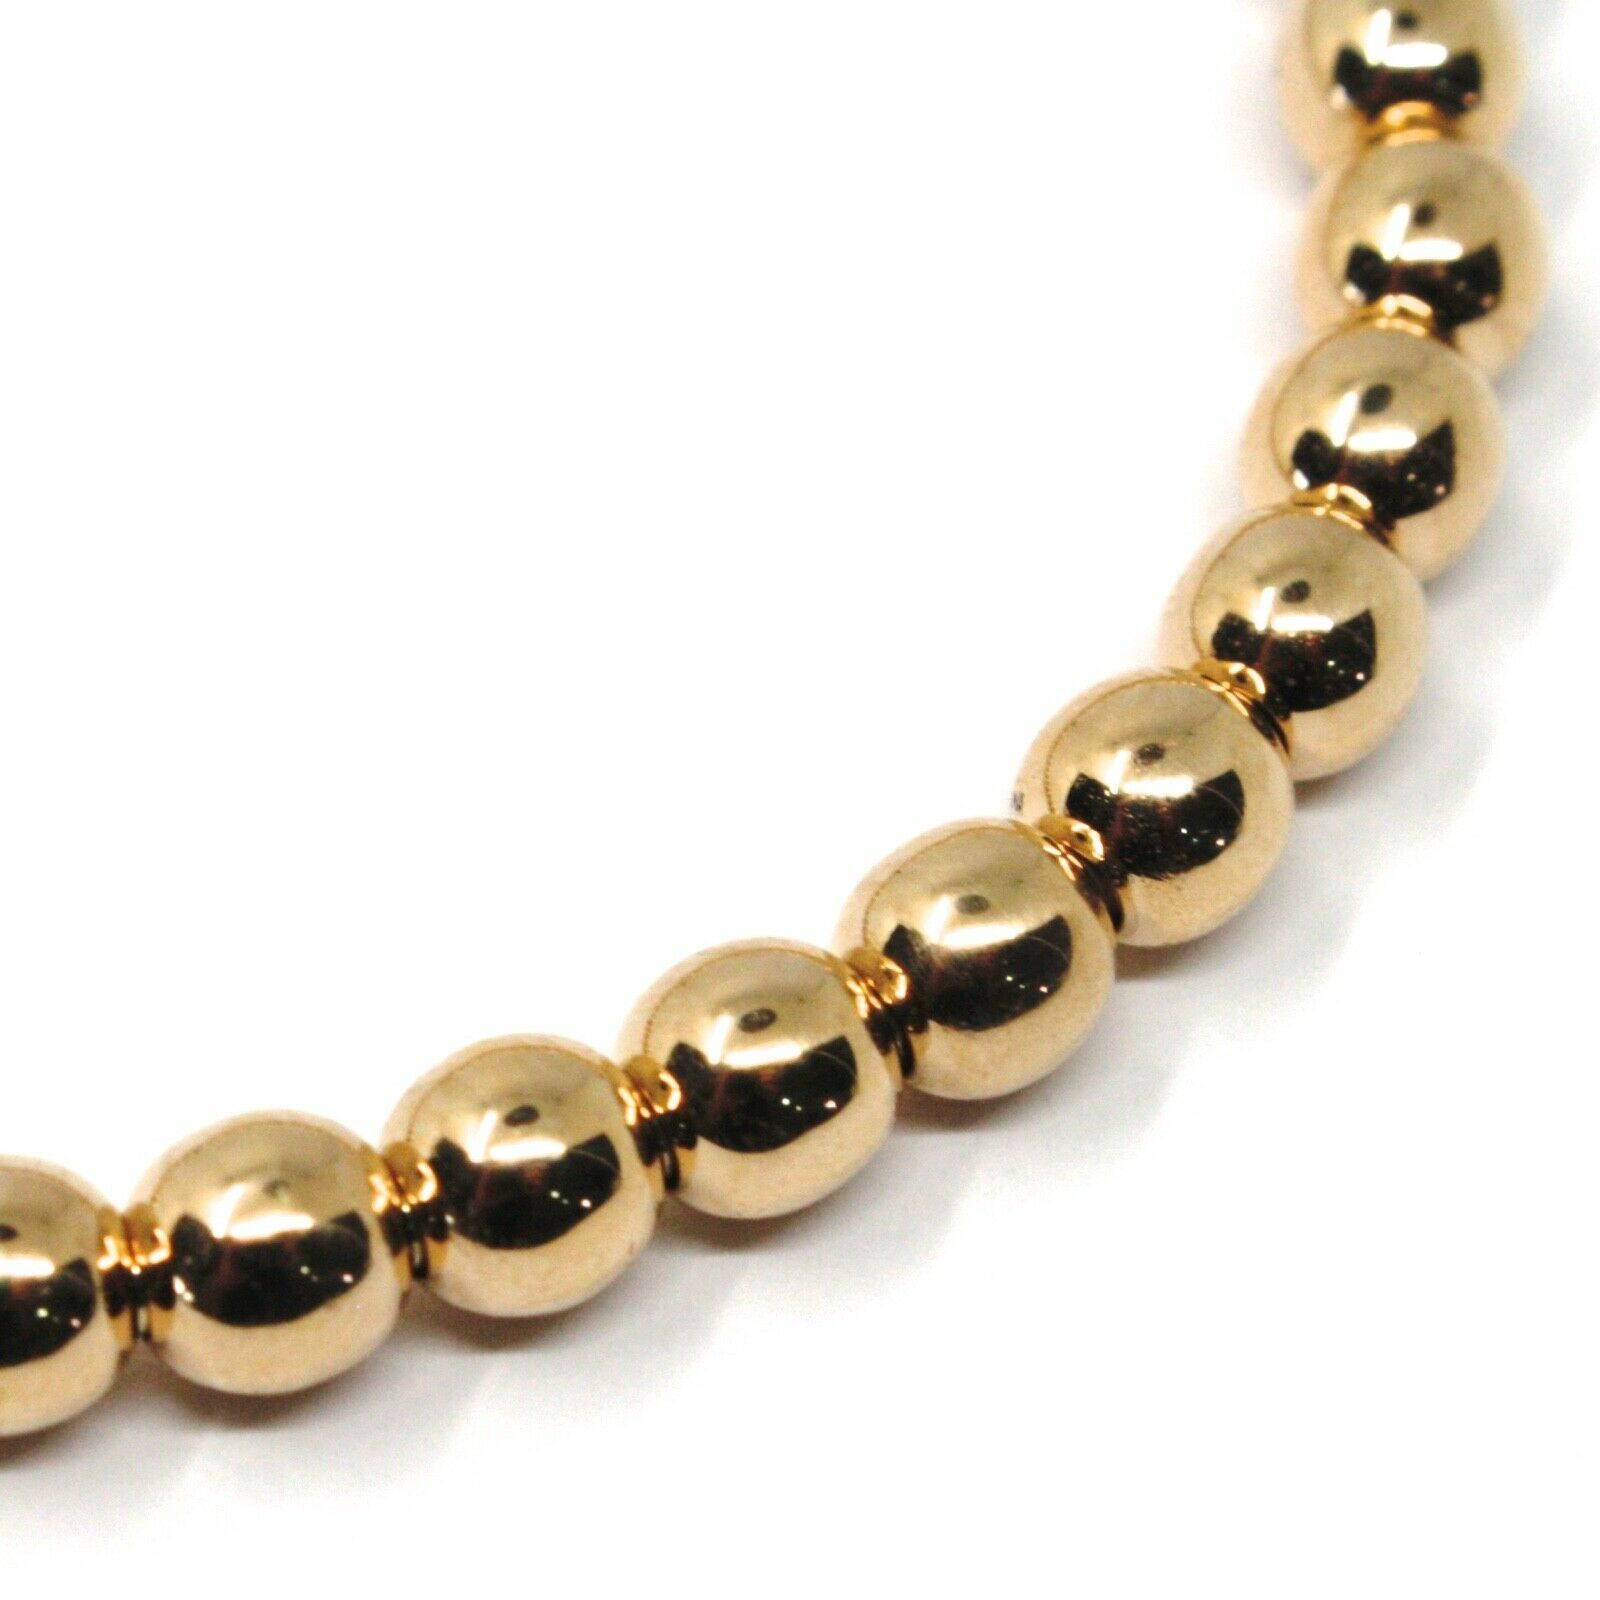 18K ROSE GOLD BRACELET, SEMIRIGID, ELASTIC, BIG 5 MM SMOOTH BALLS SPHERES